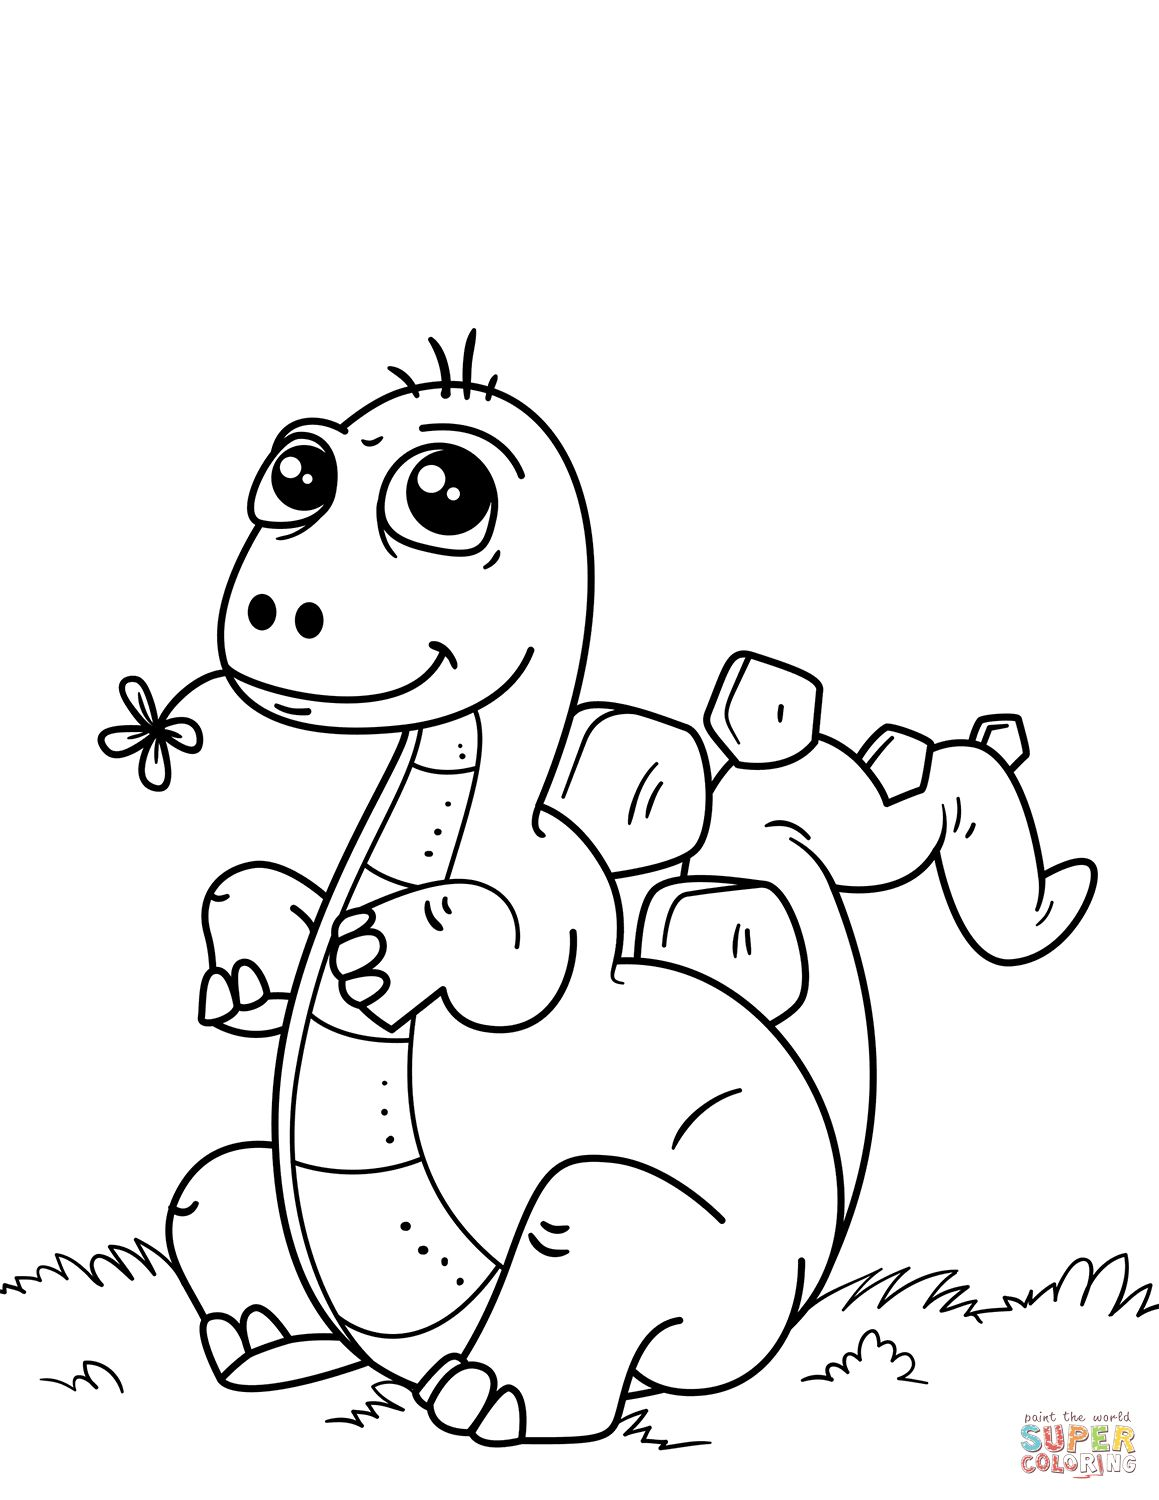 colouring dinosaur pictures cute dinosaur coloring pages for kids at getcoloringscom dinosaur colouring pictures